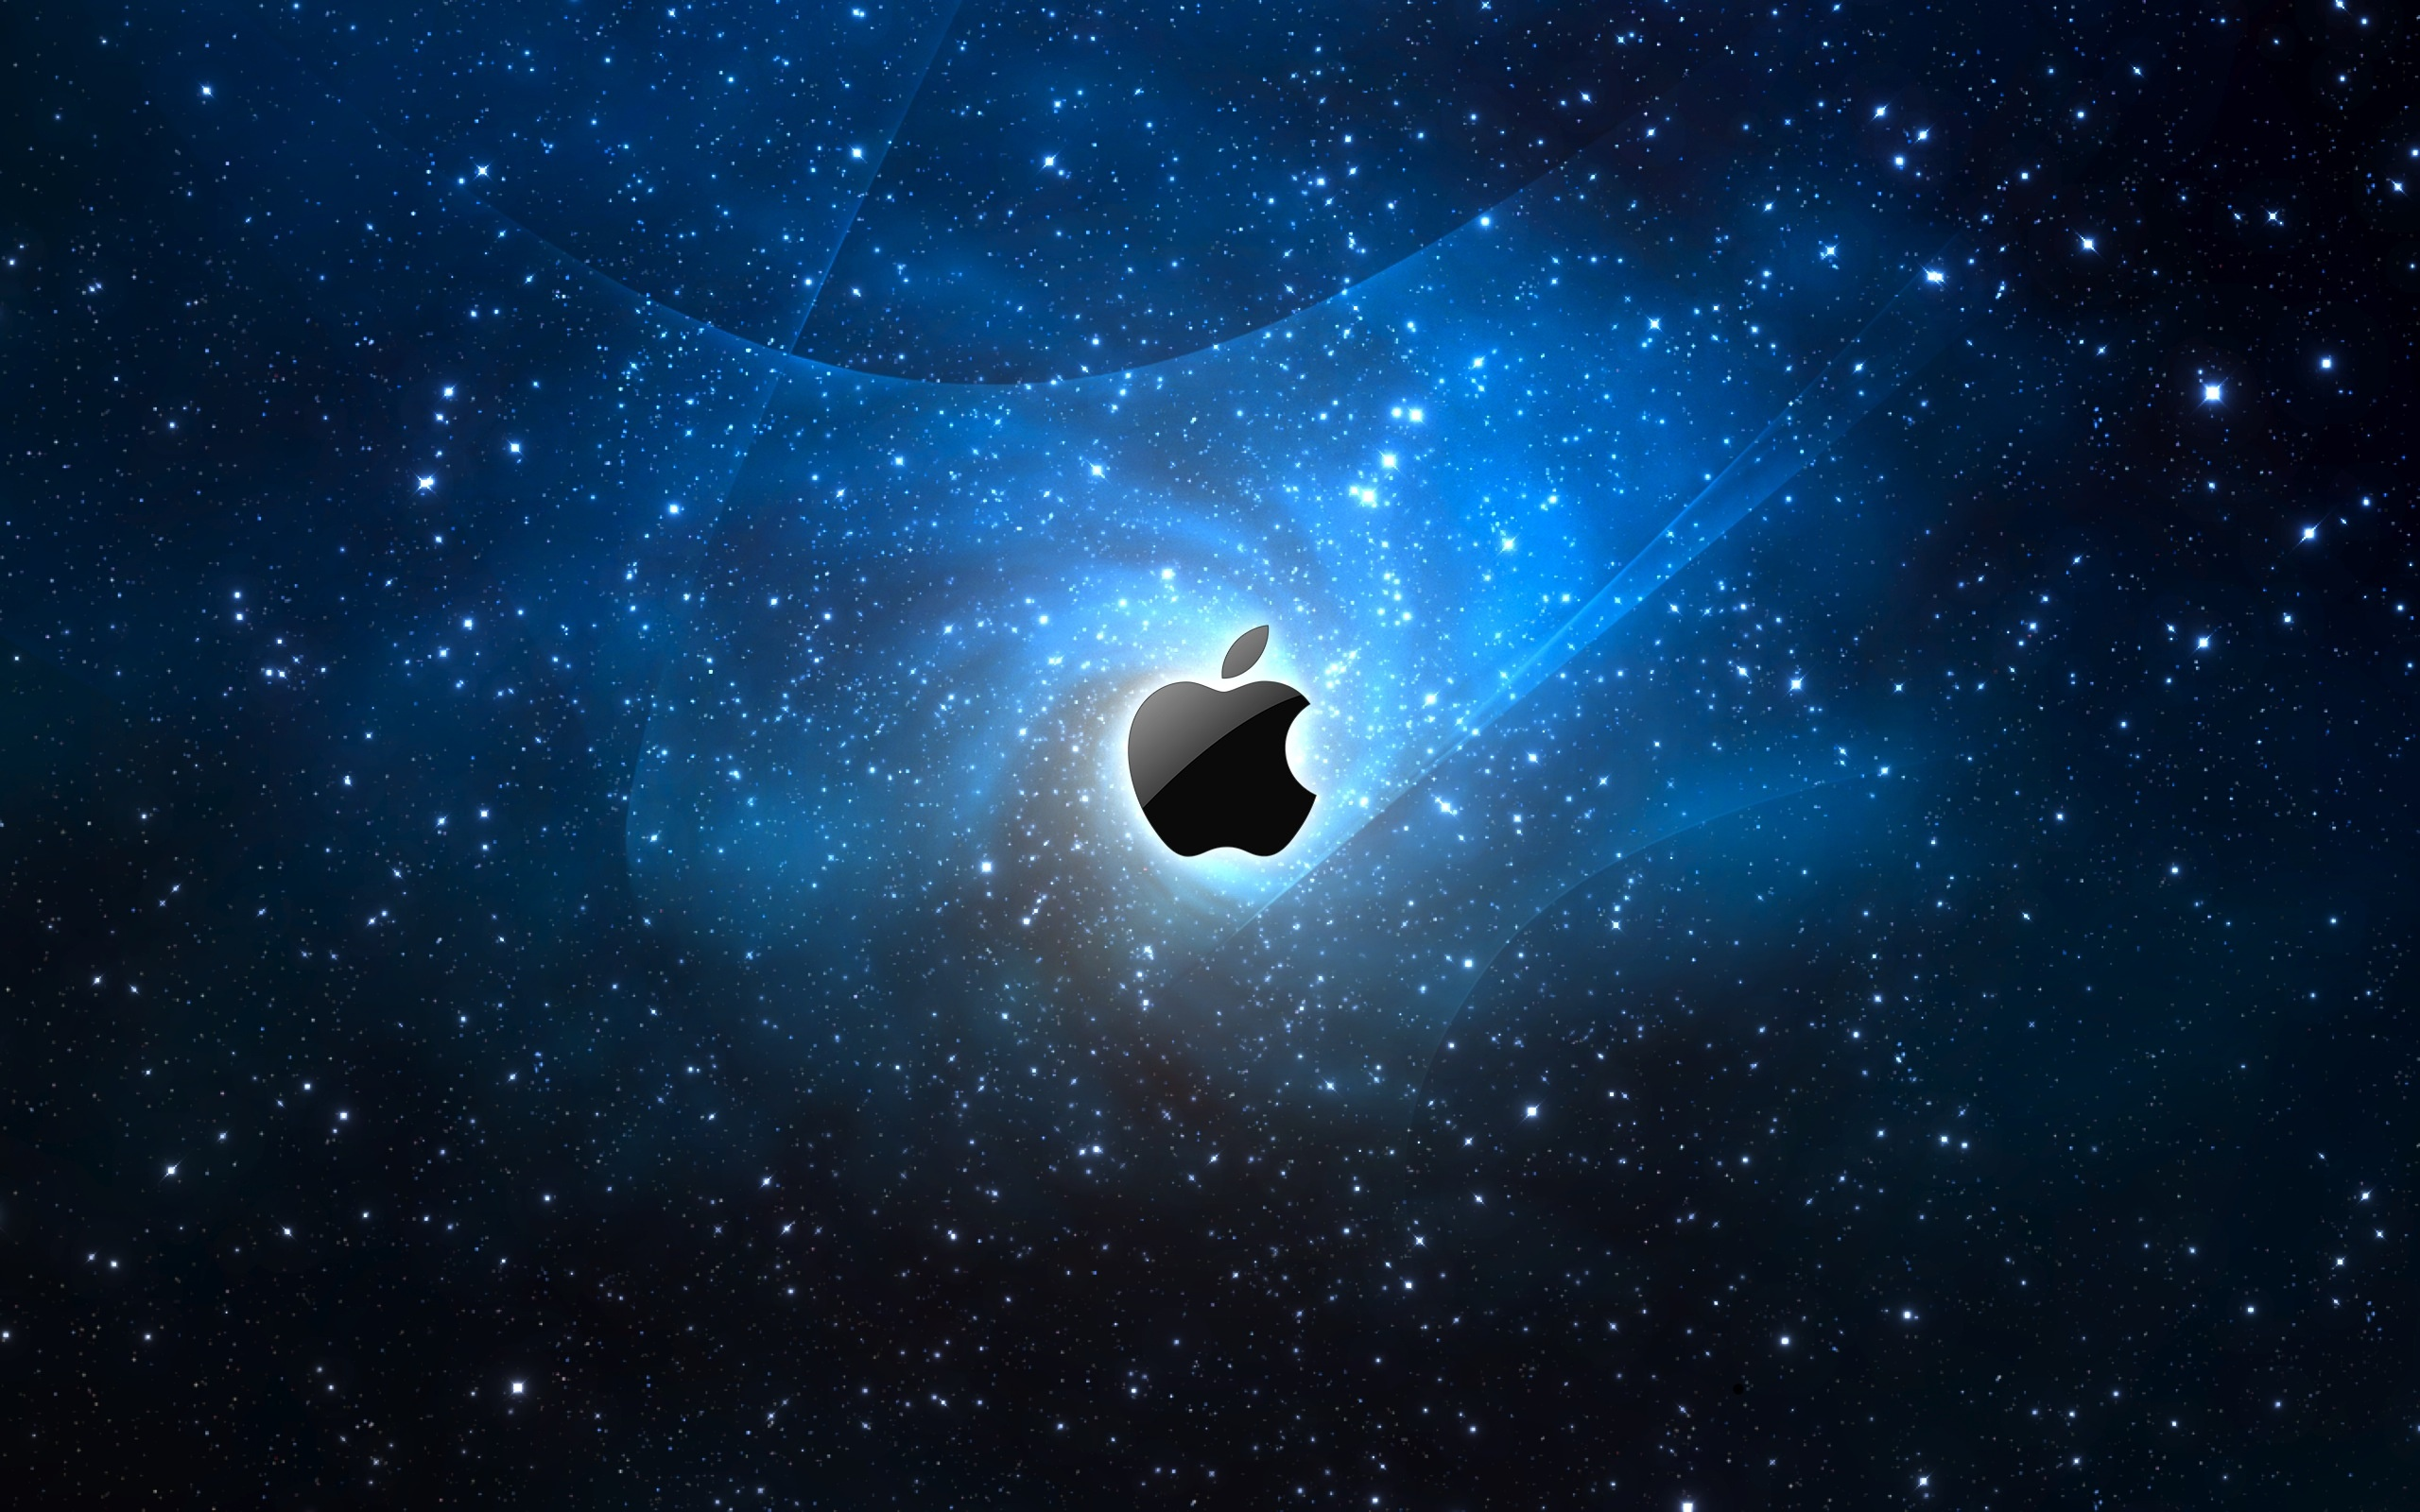 Apple in the Galaxy desktop wallpaper WallpaperPixel 2560x1600